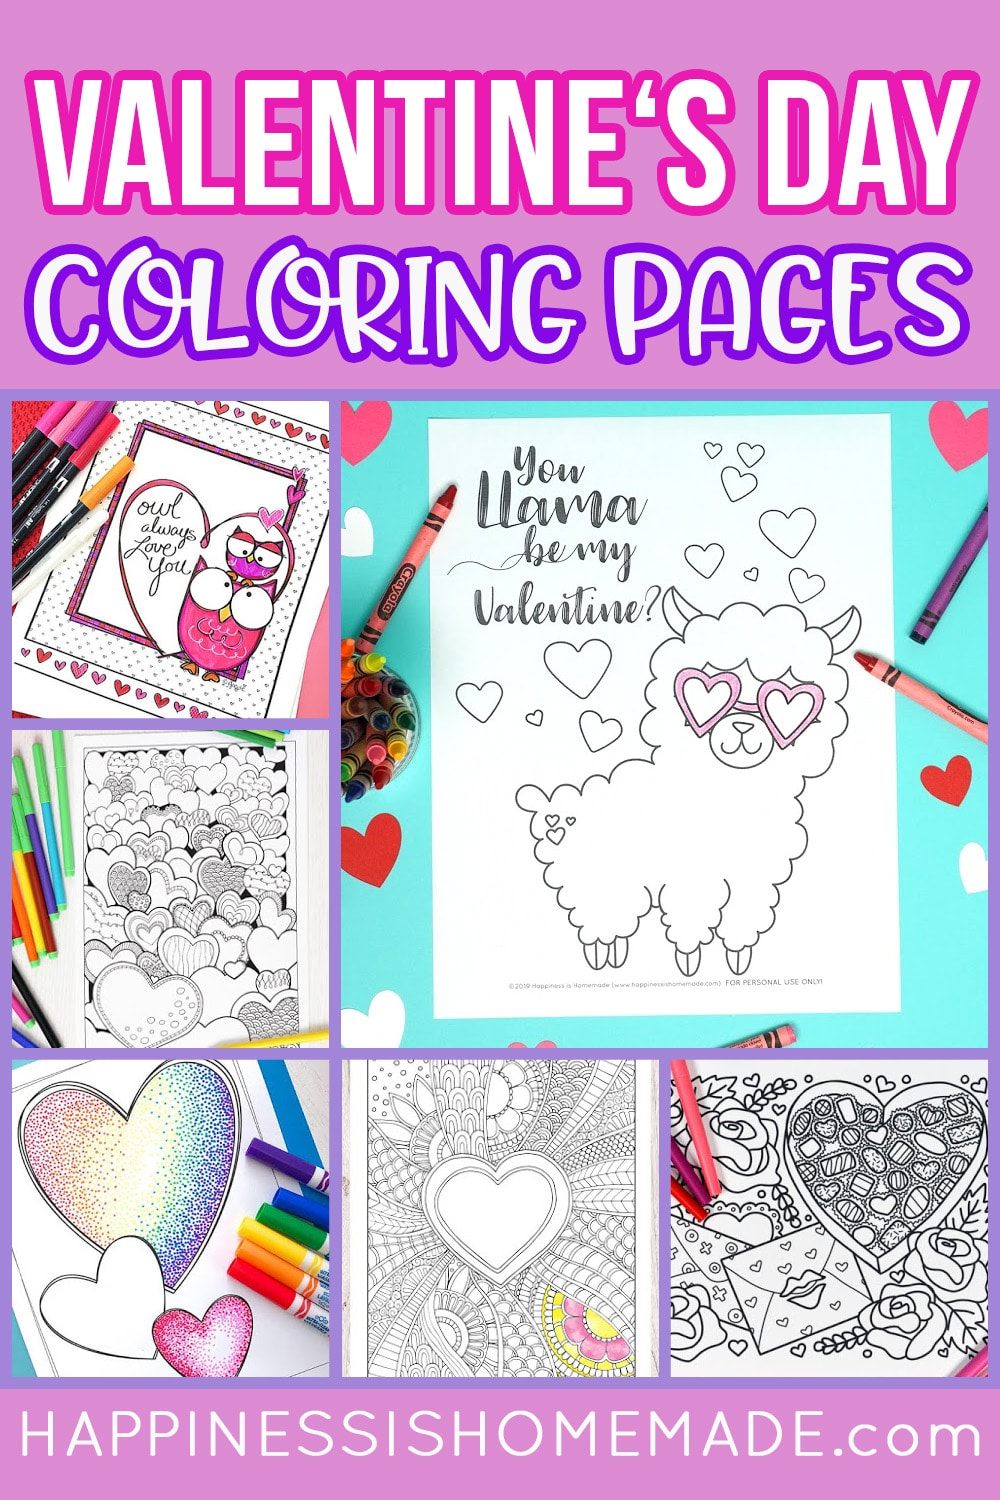 18+ Valentines Coloring Pages   Happiness is Homemade